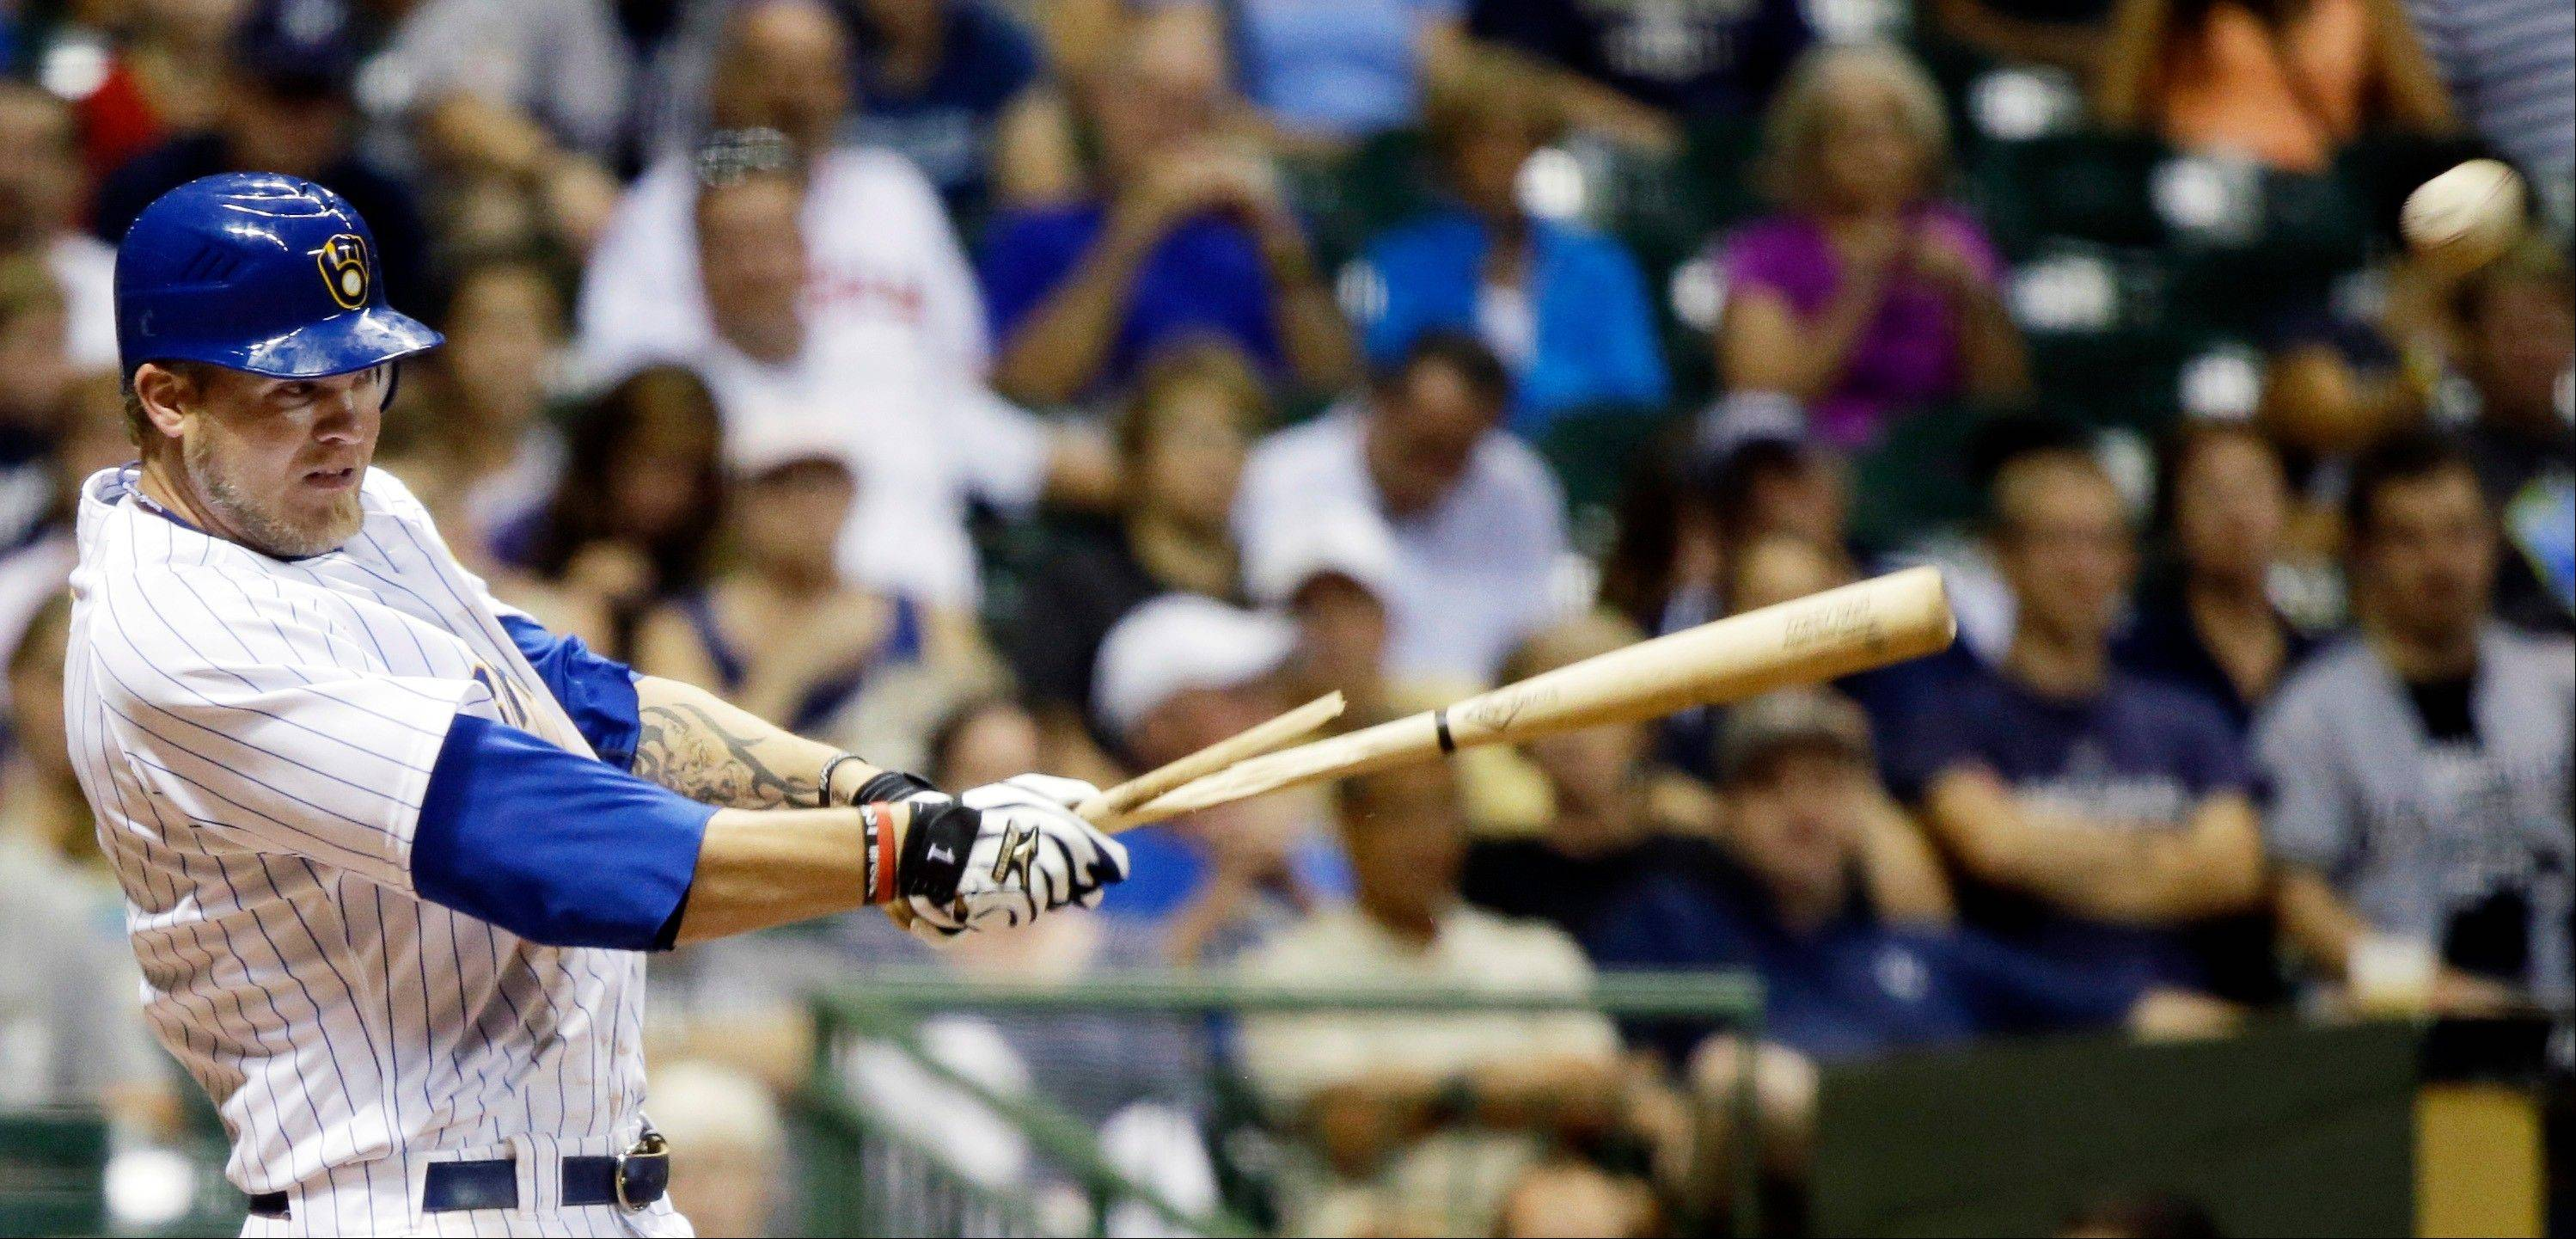 The Brewers' Corey Hart breaks his bat as he hits a single during the sixth inning Friday against the Pittsburgh Pirates in Milwaukee.